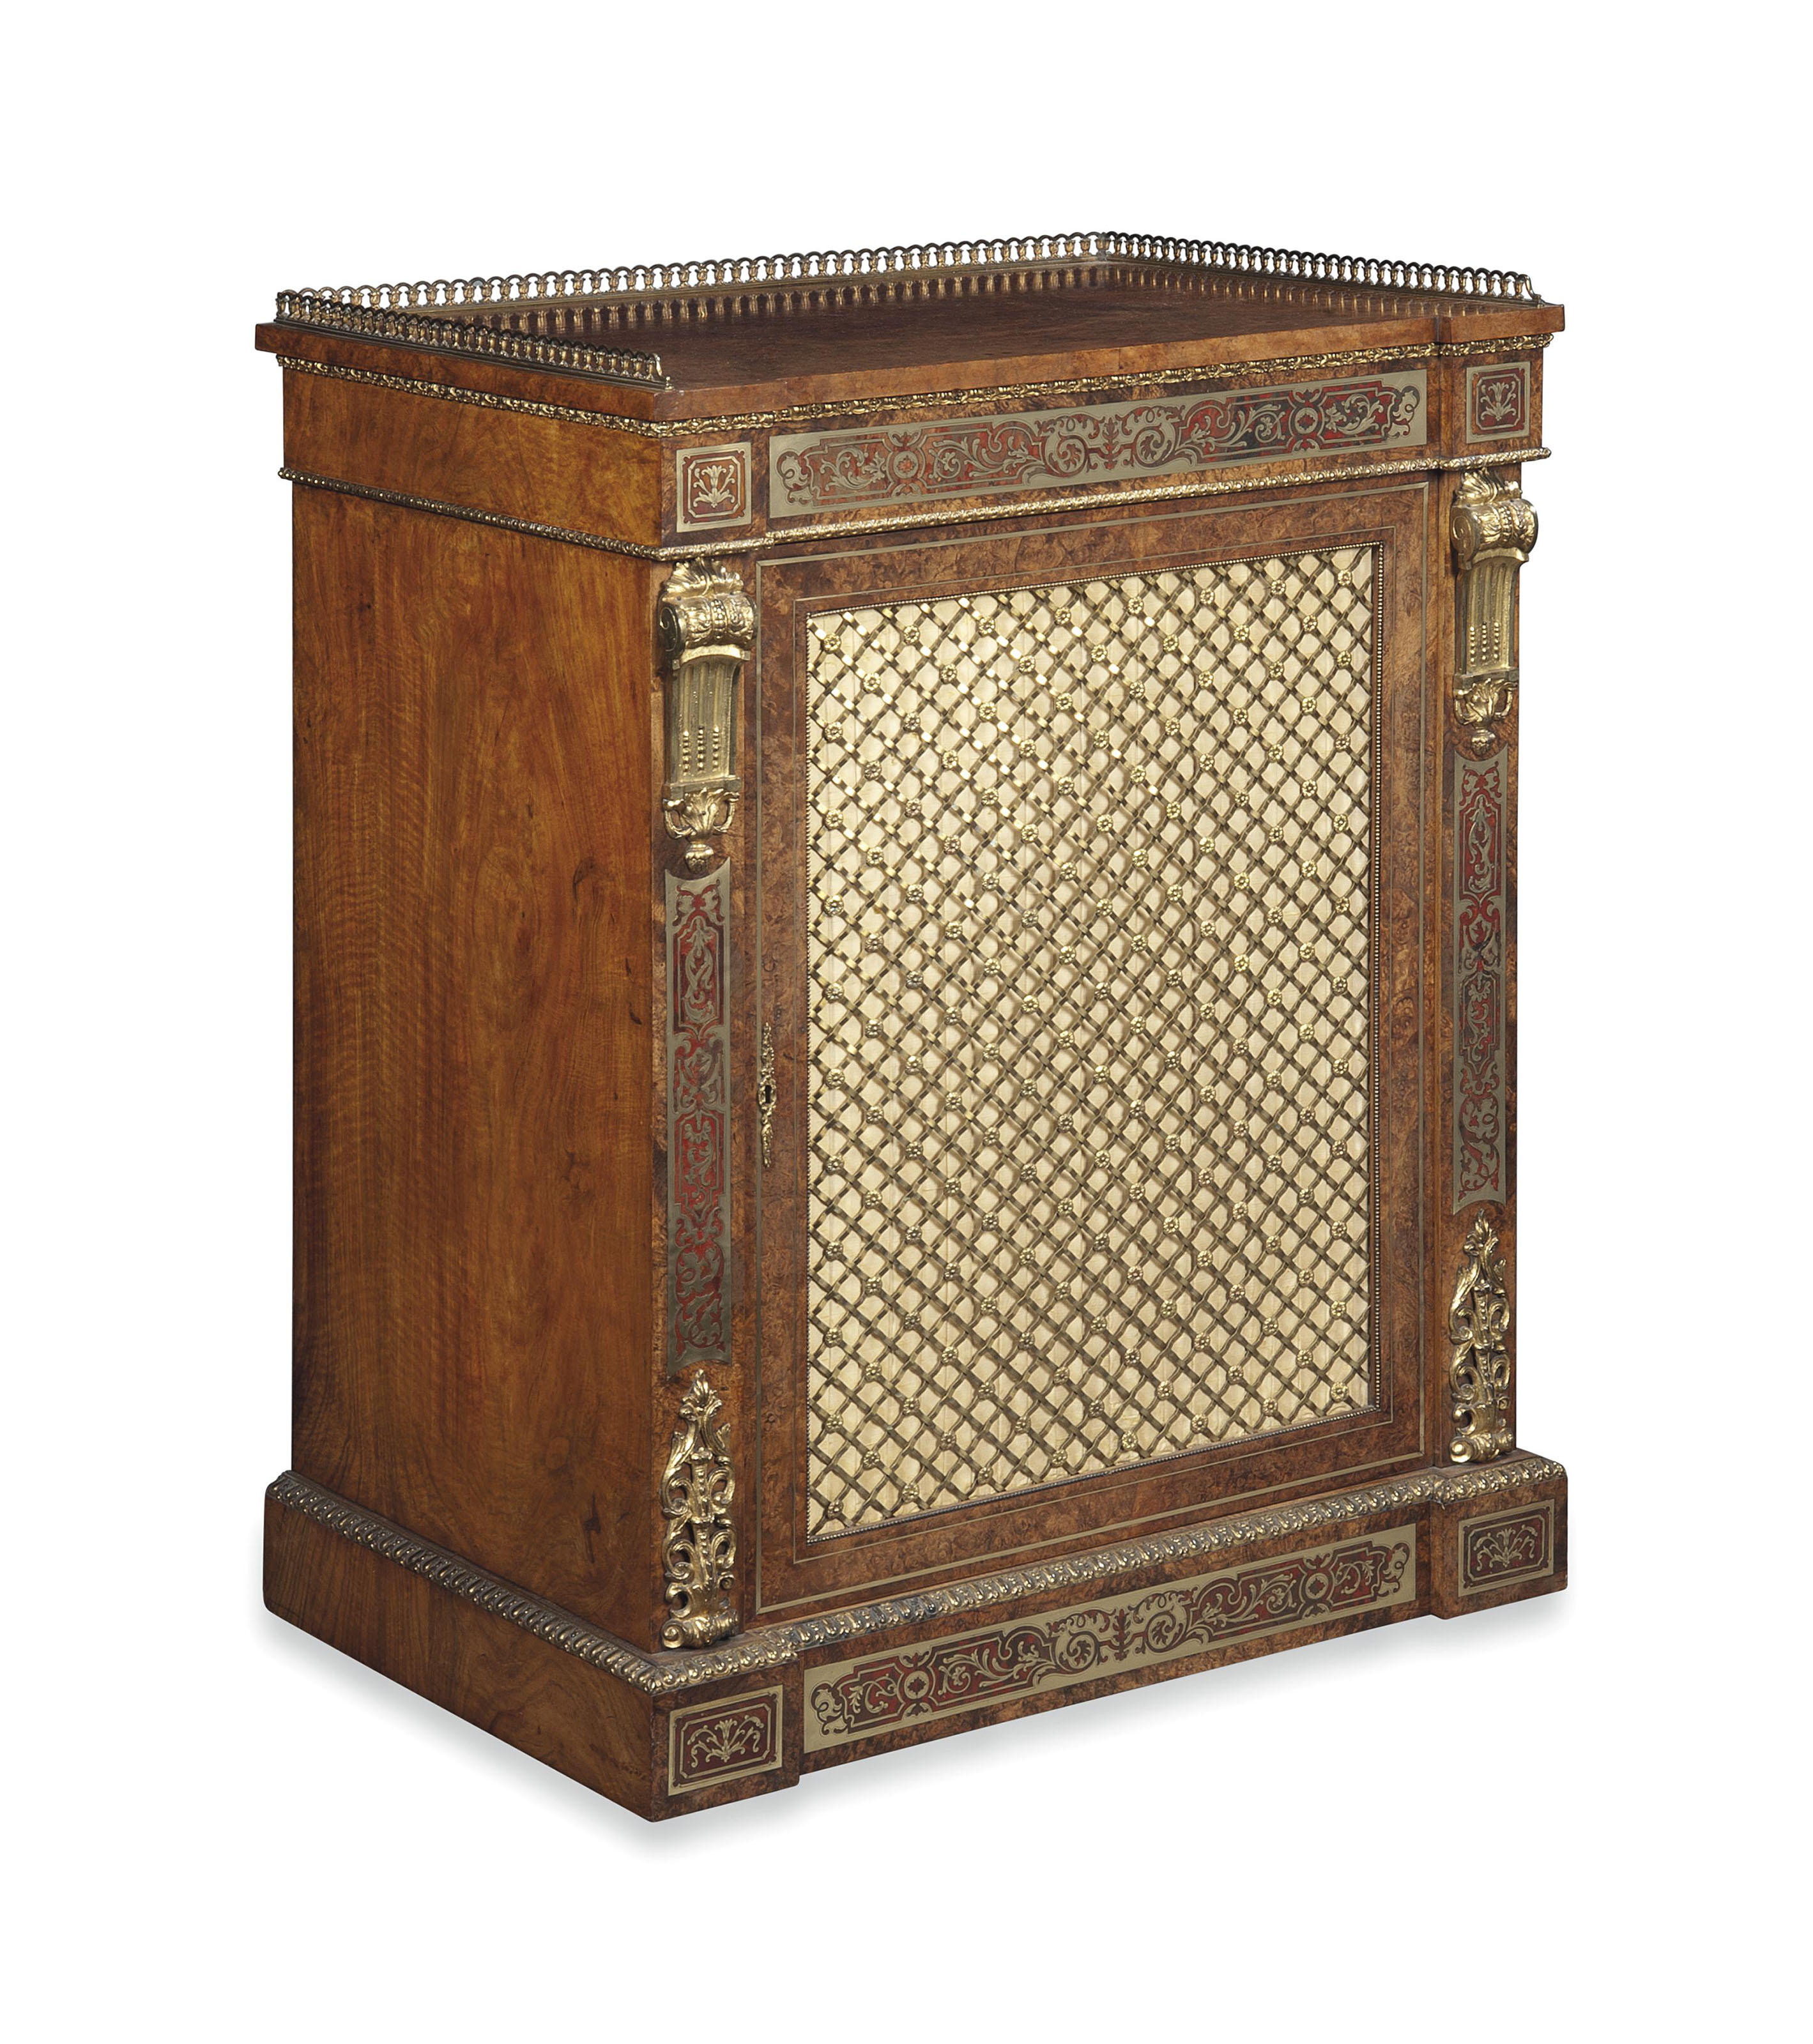 A VICTORIAN GILT-METAL MOUNTED, BRASS-INLAID TORTOISESHELL AND FIGURED WALNUT SIDE CABINET